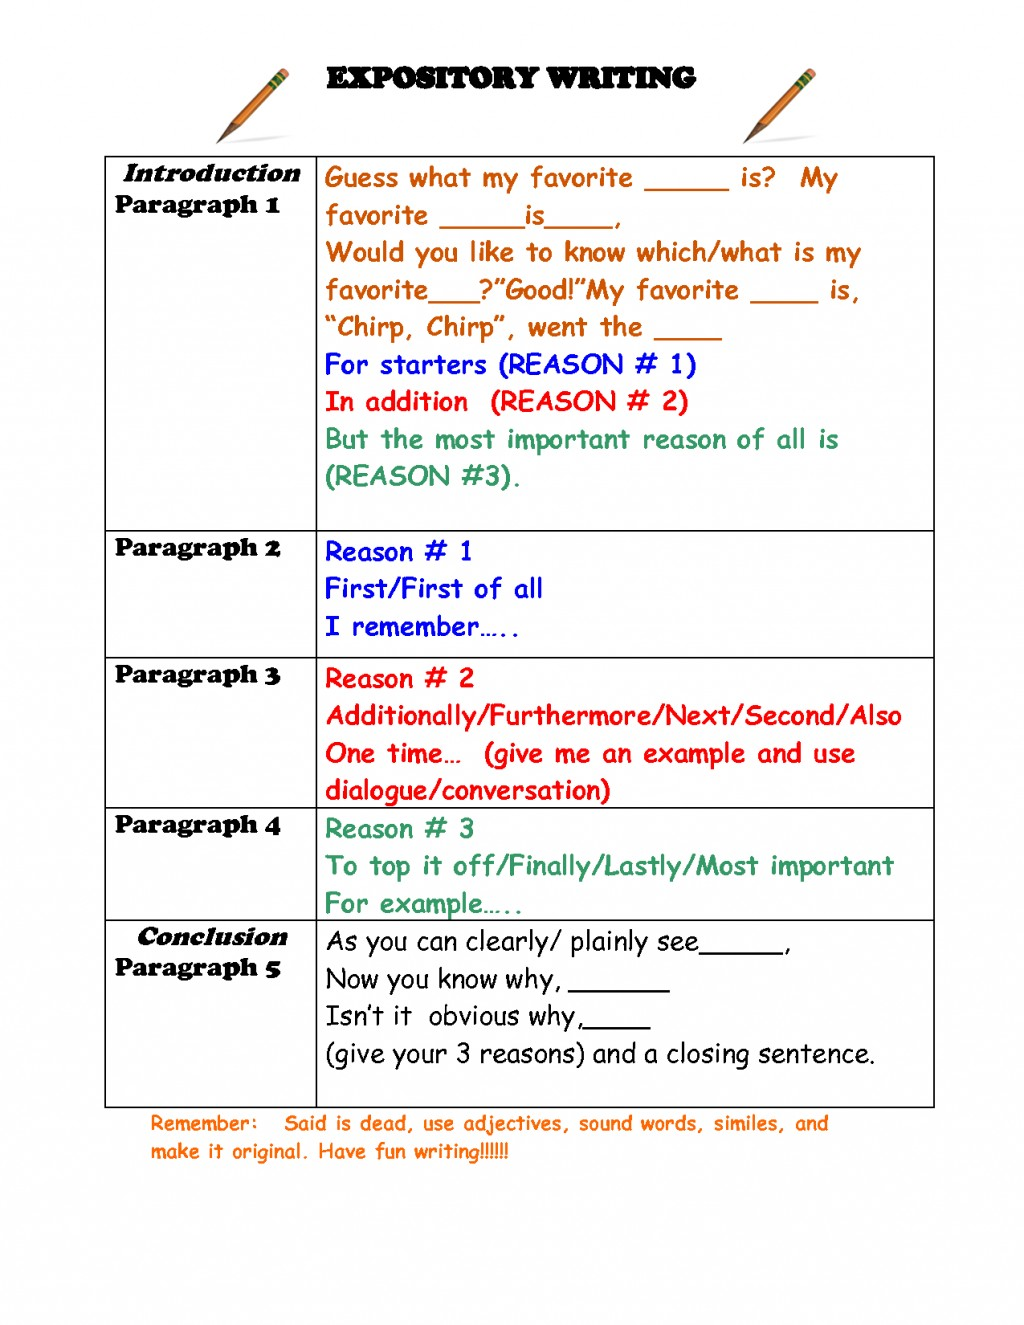 008 Expository Essay Introduction Surprising Format Sample Large